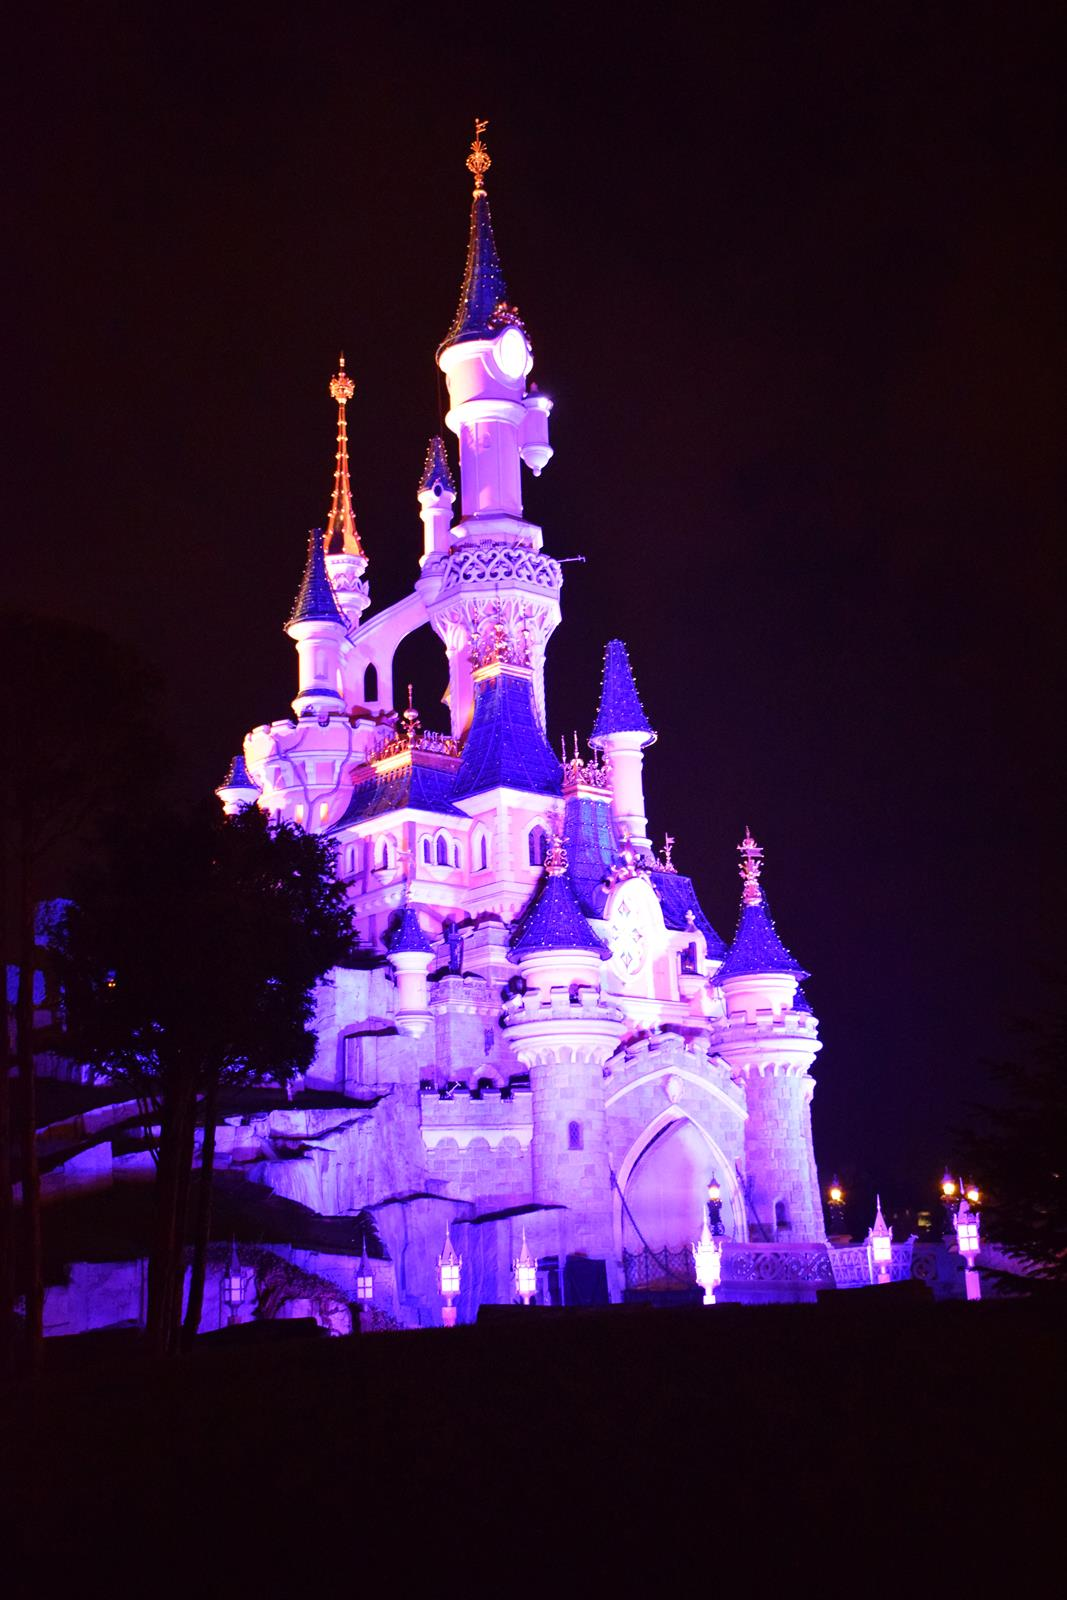 Disney land paris noel 2017 11